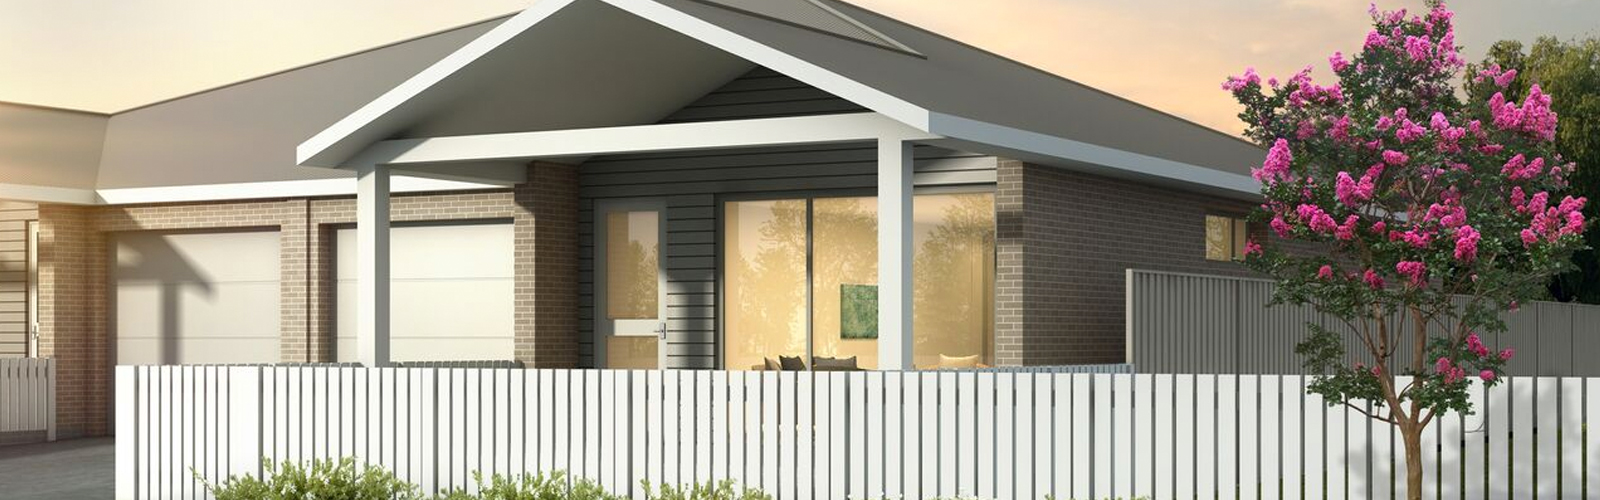 Tallowood retirement lifestyle resort village over 55s Acacia facade architecture designed